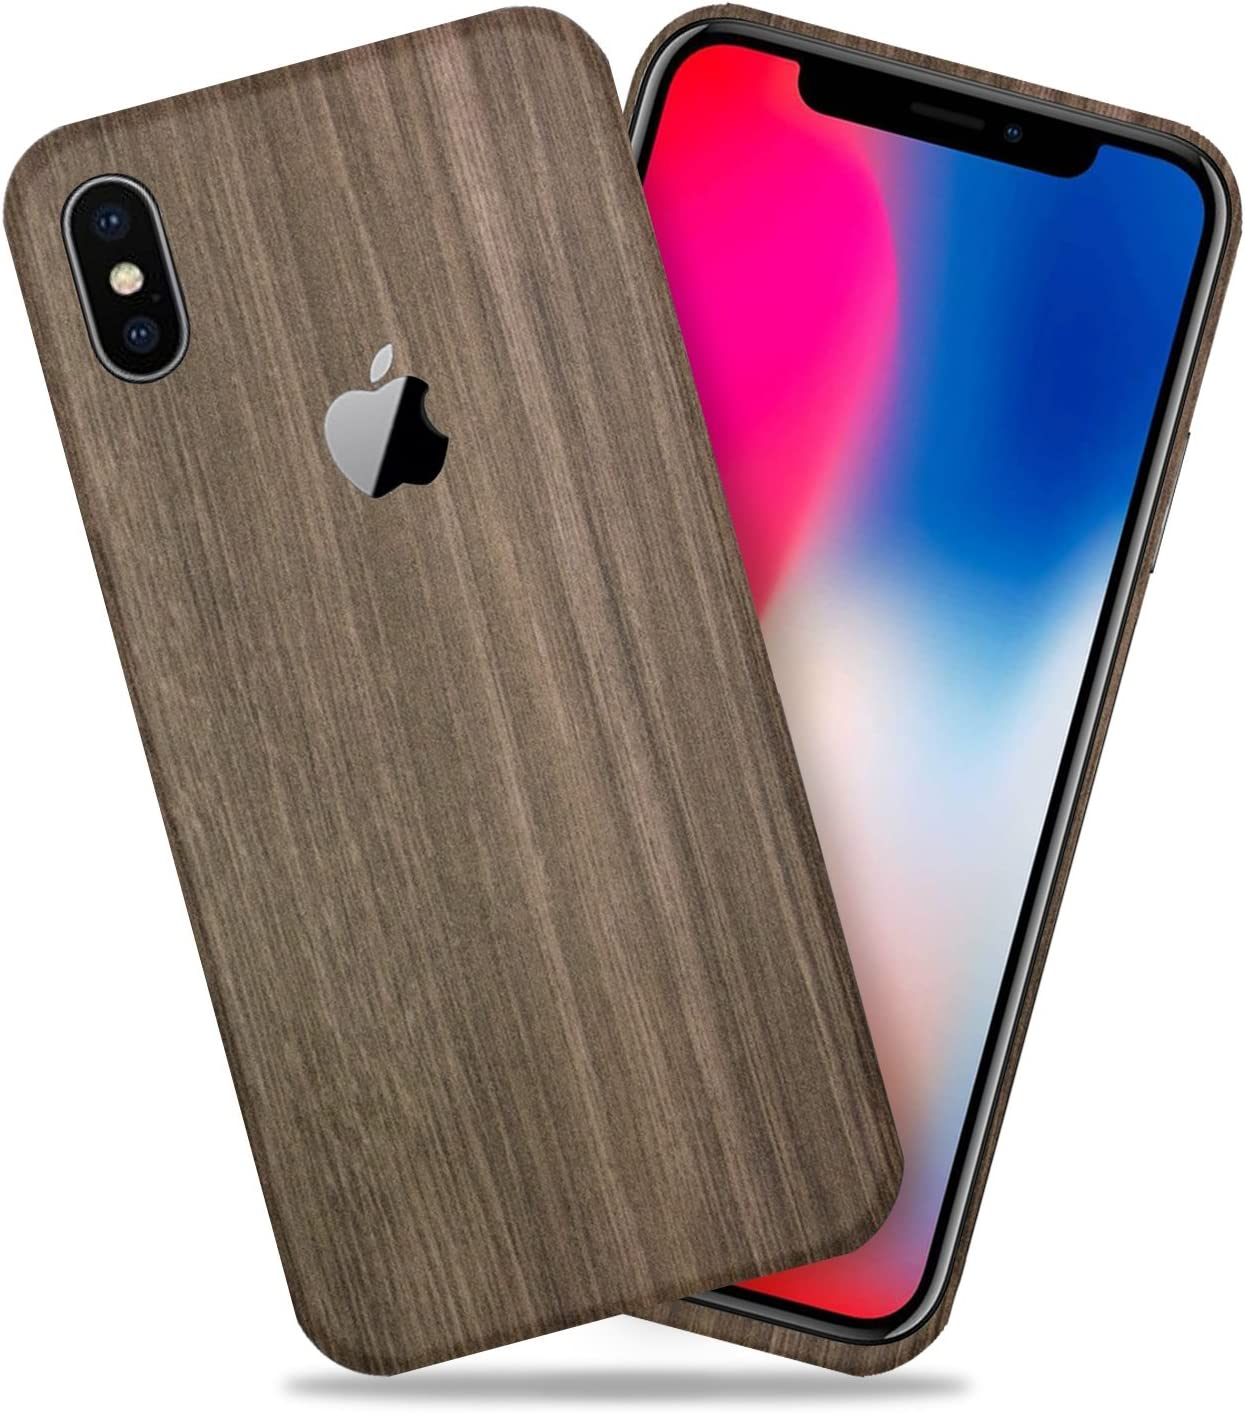 Brown Wood Texture Protective Skin Decal for Apple iPhone X/iPhone 10 Sticker Wrap Cover 2 Pack by GolemGuard